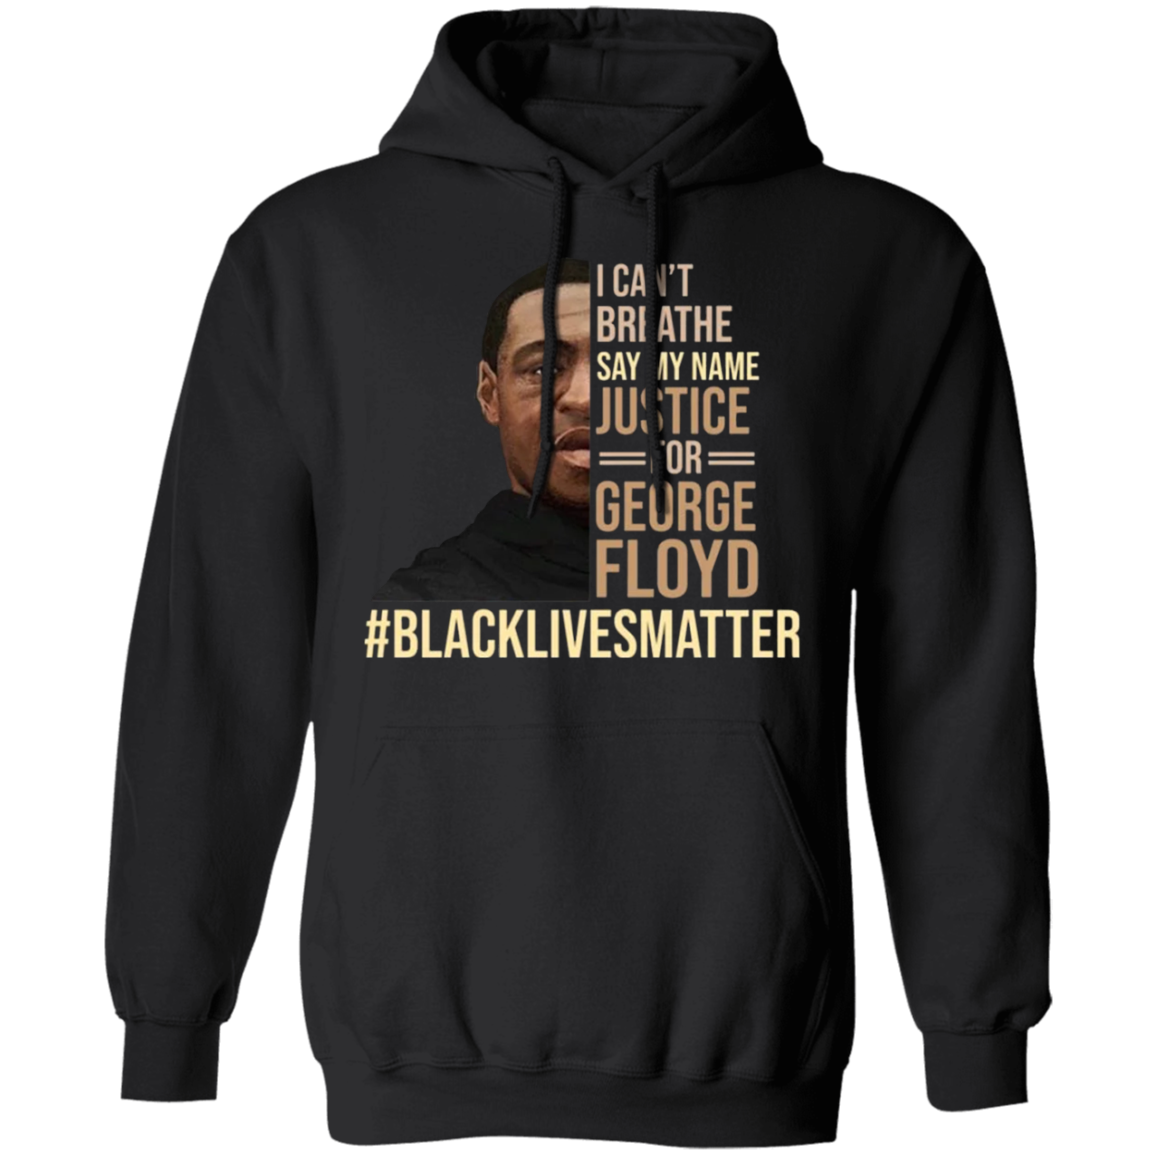 George Floyd I Can't Breathe Hoodie Say My Name George Floyd Hoodie - Black Lives Matter